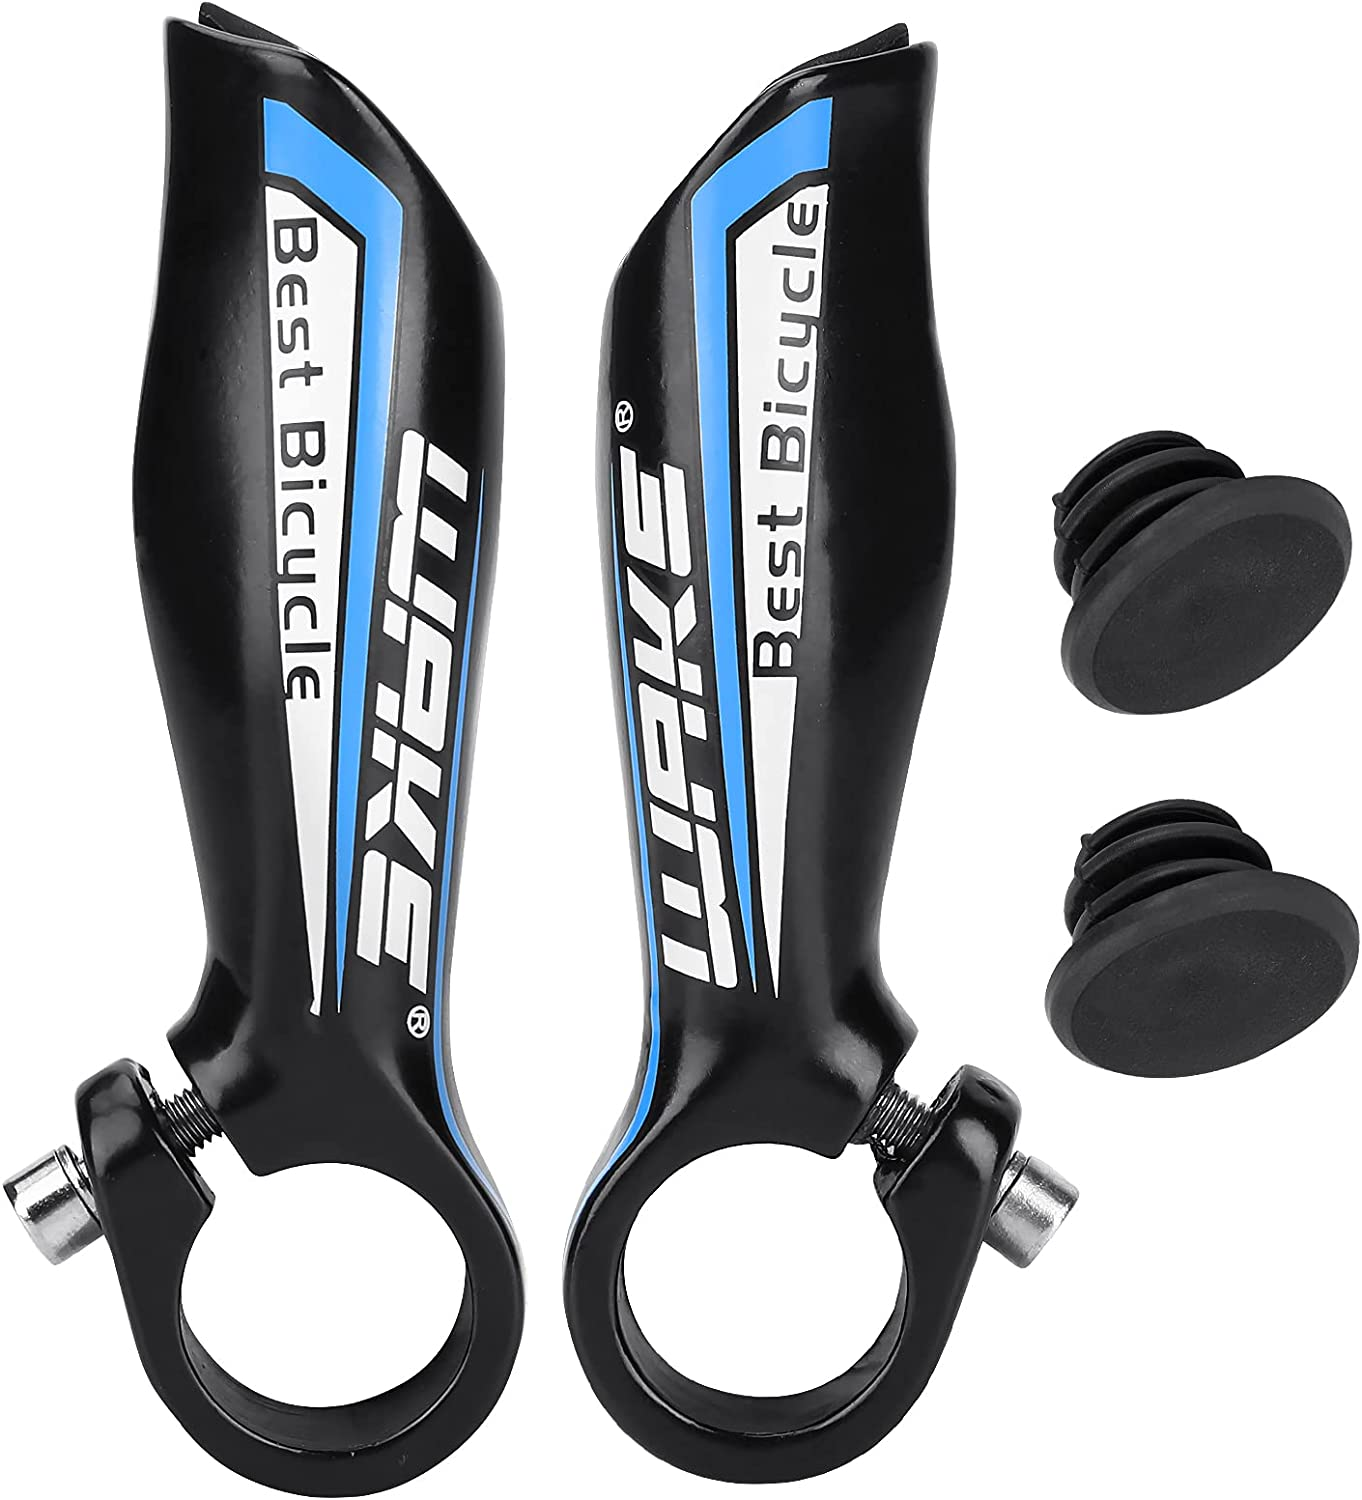 Welltop Bike Bar Limited price Ends Colorado Springs Mall 2PCS Bicycle Handlebar End Aluminum Alloy